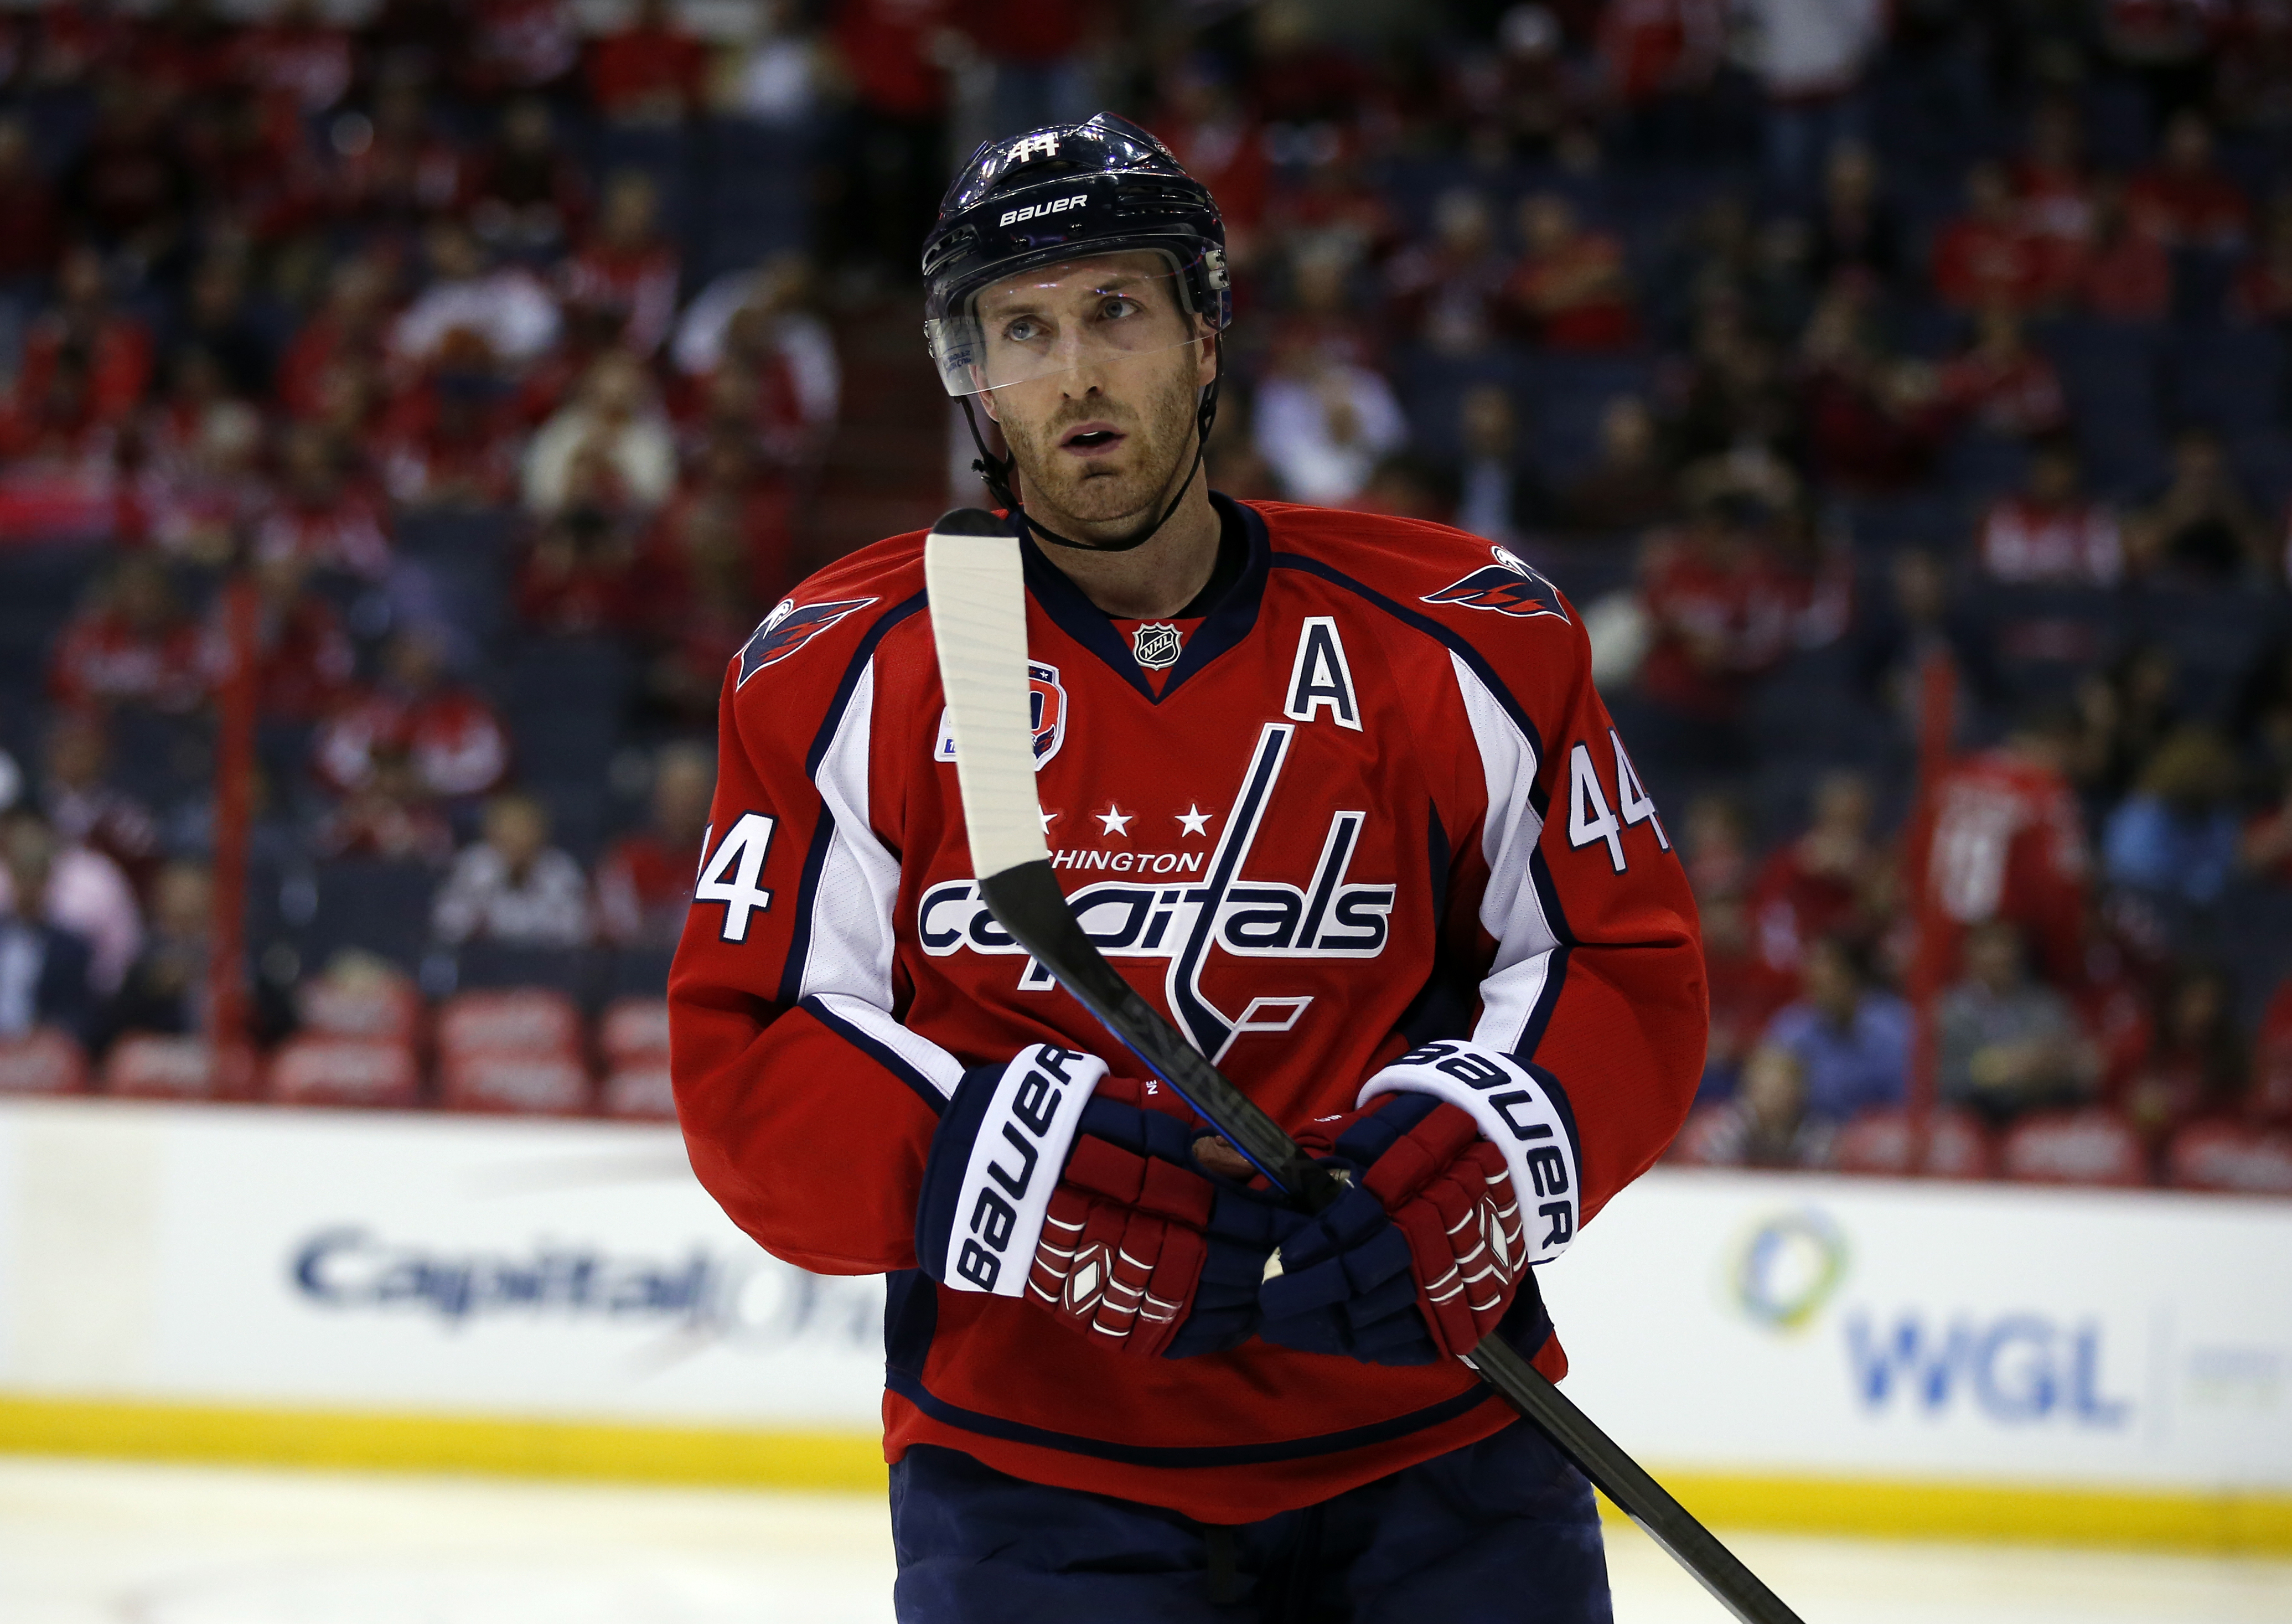 Washington Capitals defenseman Brooks Orpik (44) pauses on the ice before the start of the second period of Game 1 in the first round of the NHL hockey Stanley Cup playoffs against the New York Islanders, Wednesday, April 15, 2015, in Washington. (AP Phot